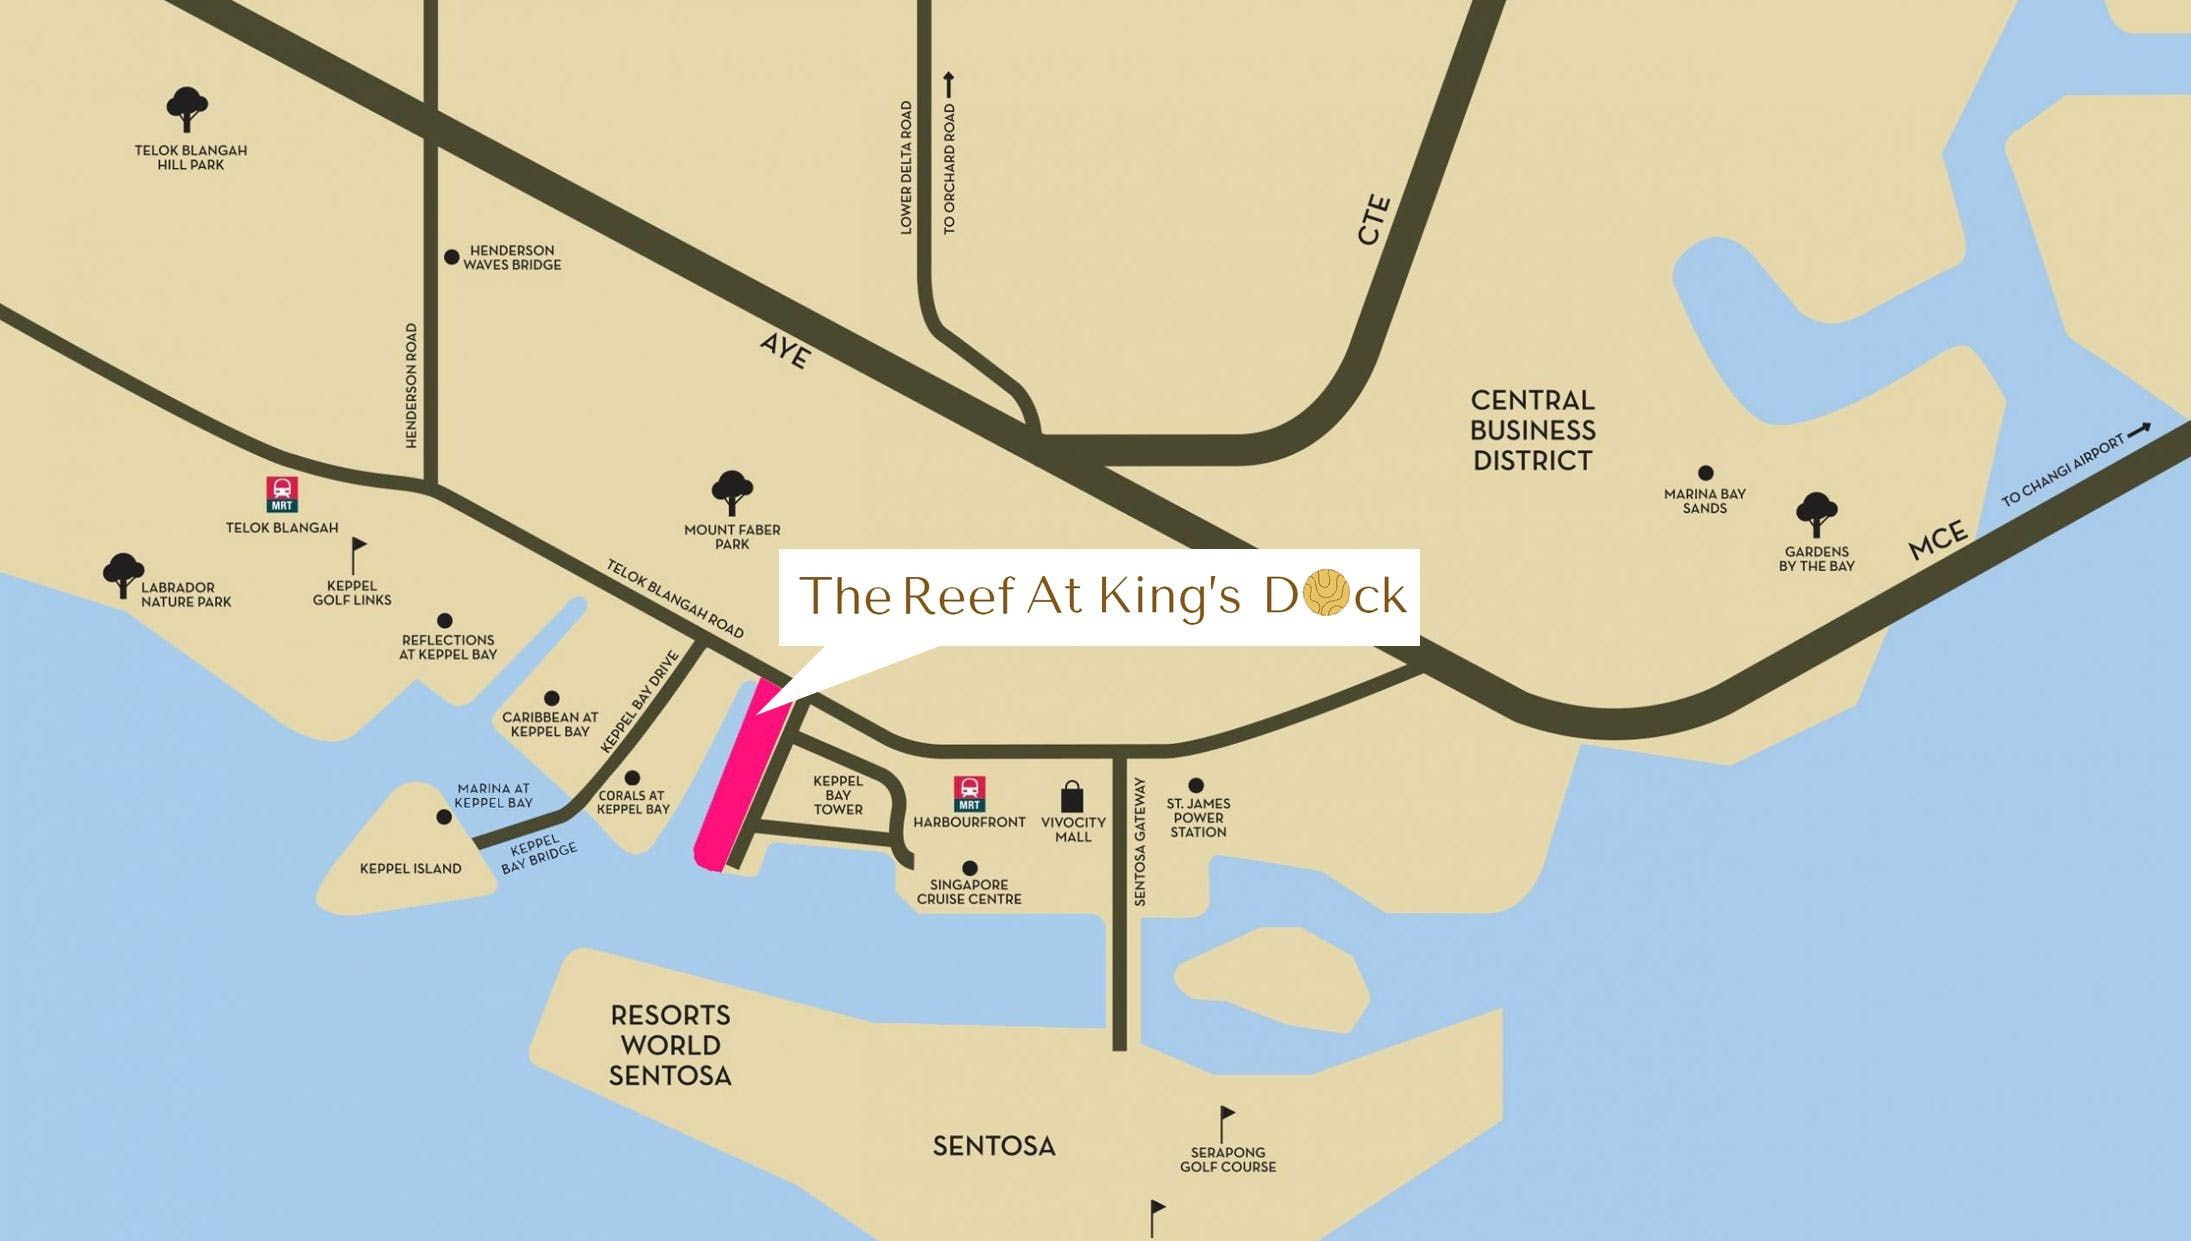 The Reef at King's Dock is mere minutes away on foot to major shopping centres and Harbourfront MRT Station. It is also conveniently serviced by many major highways.